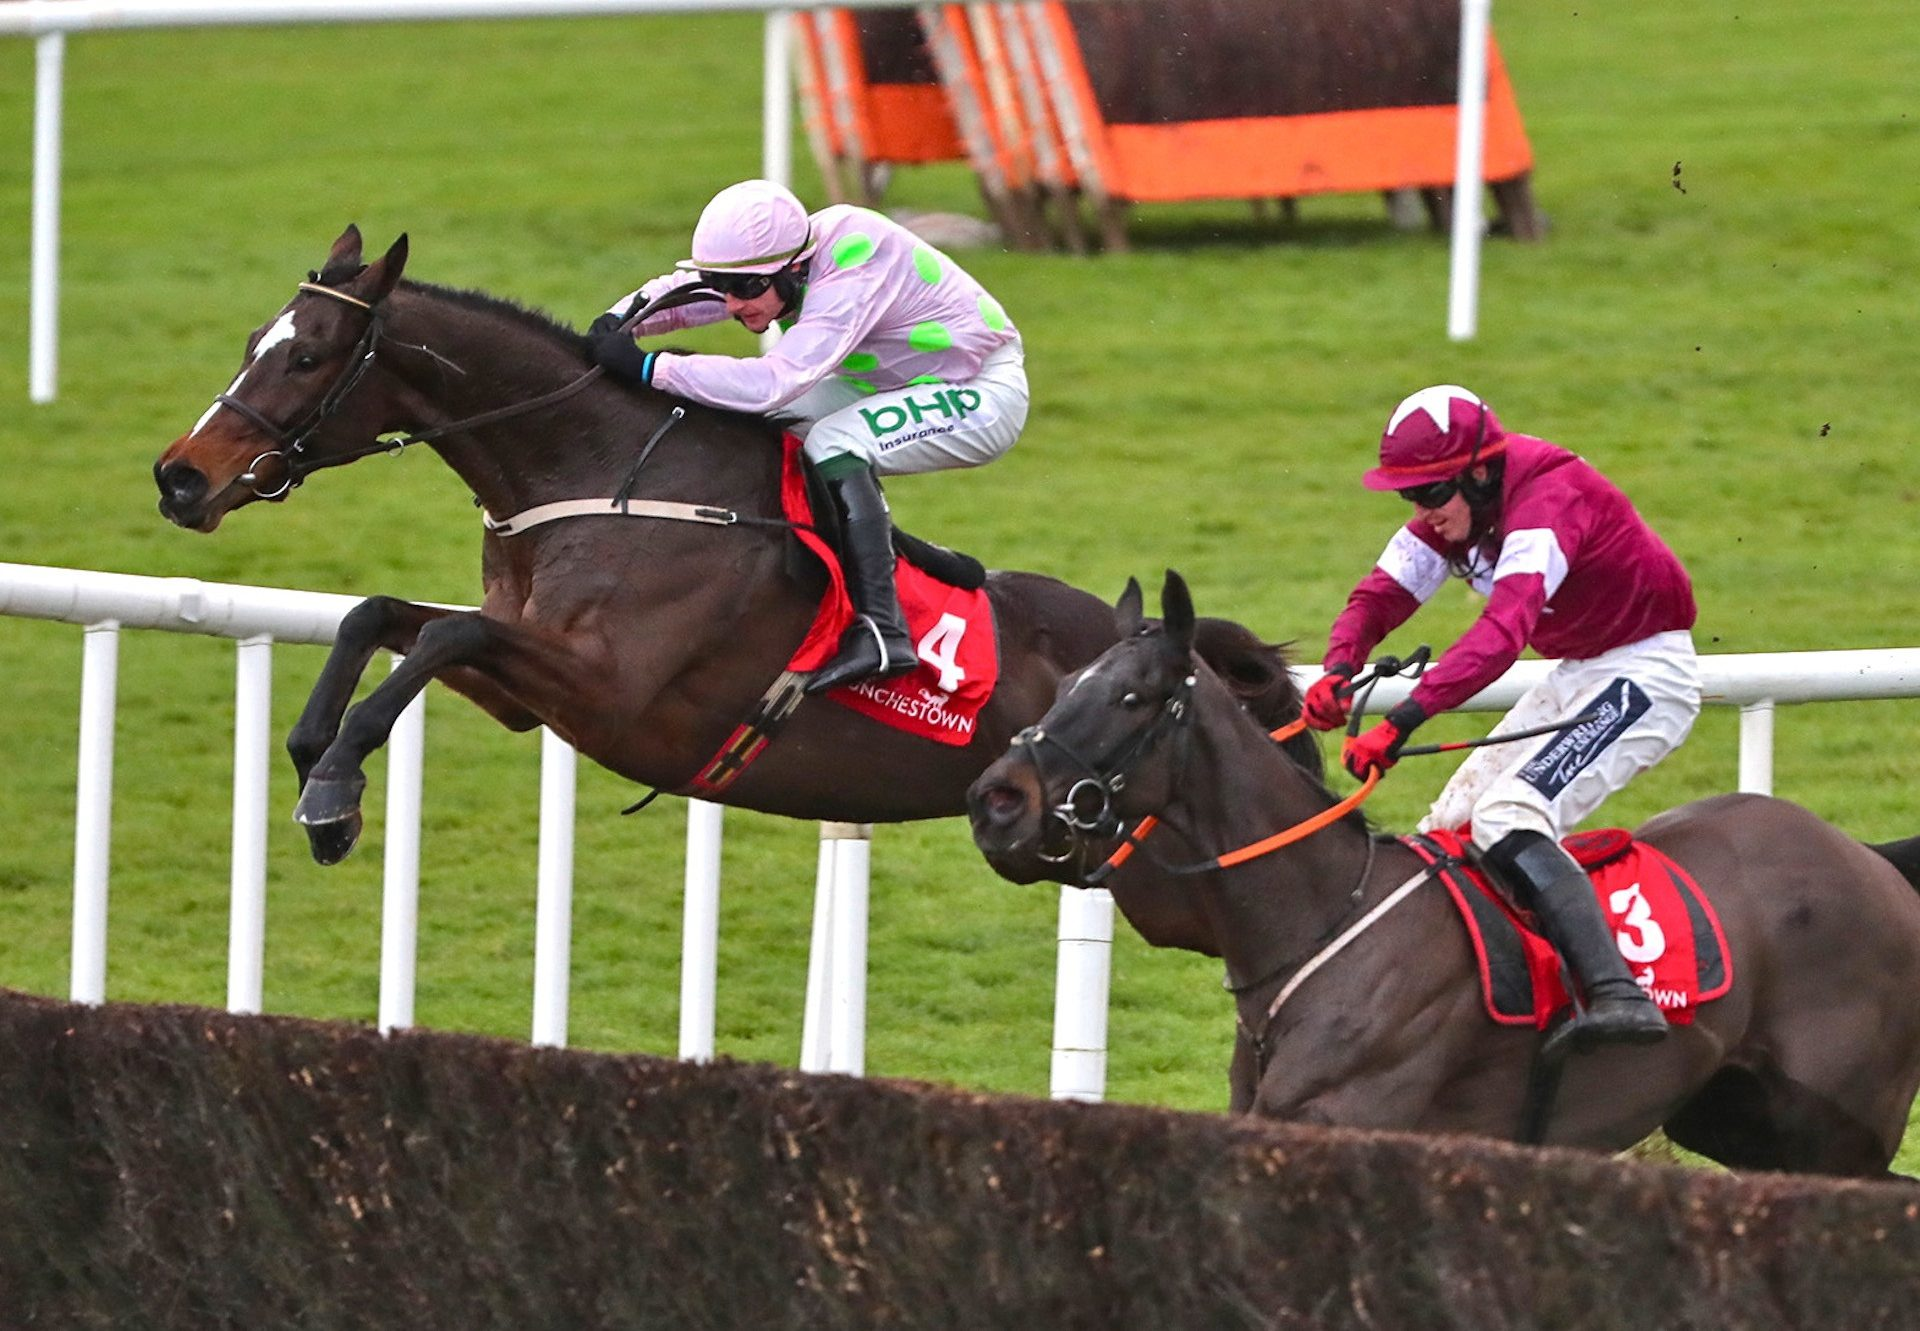 Min Wins His Second John Durkan Chase